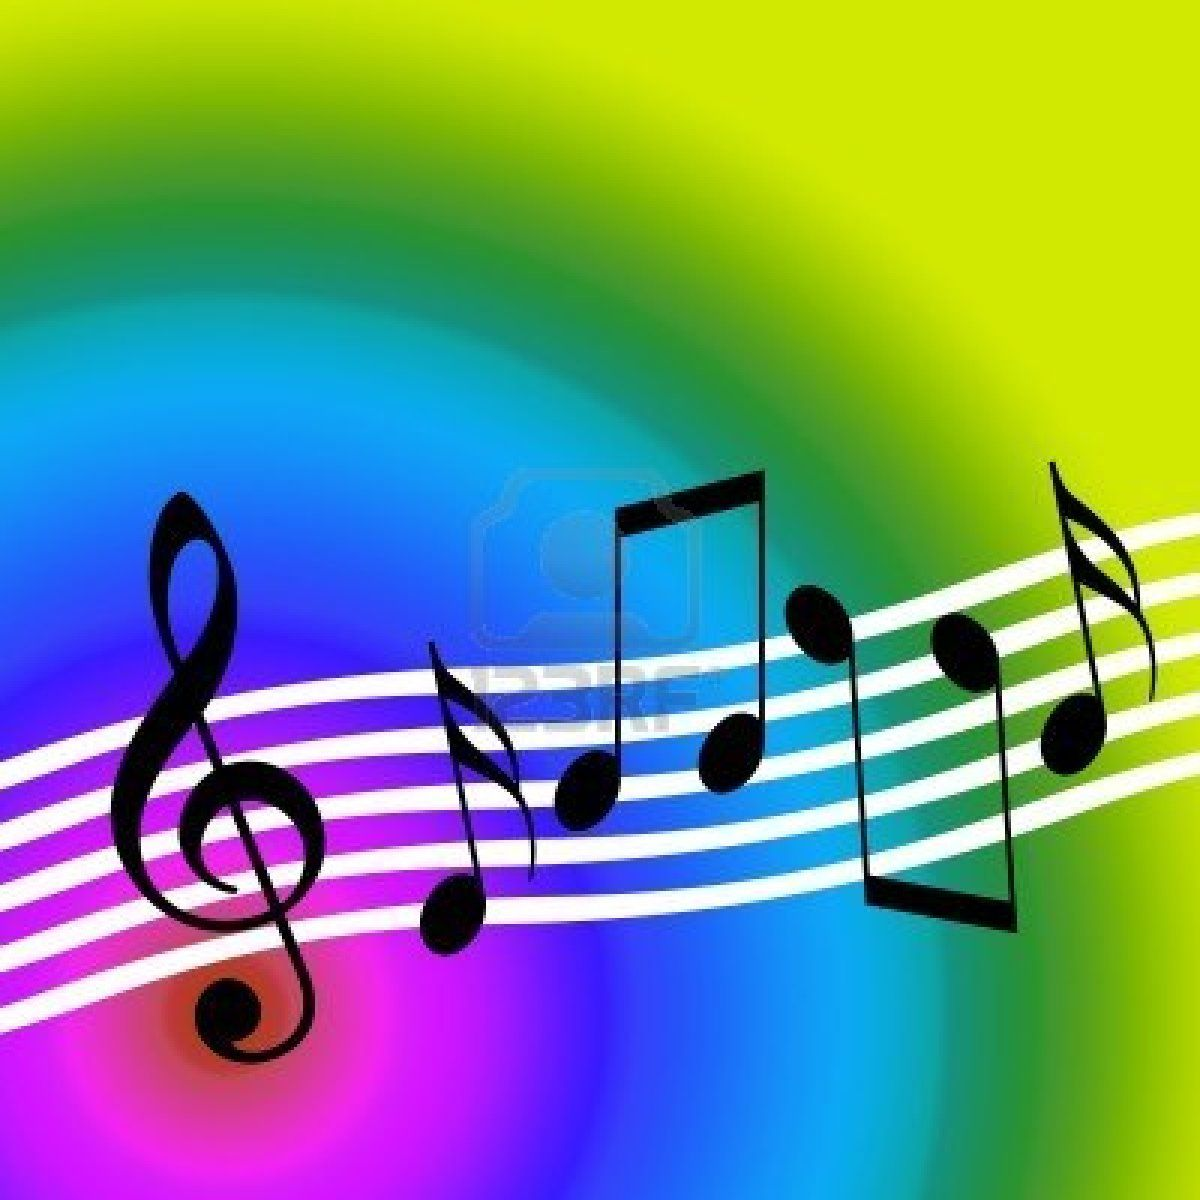 music symbols colorful music musical symbols over bright